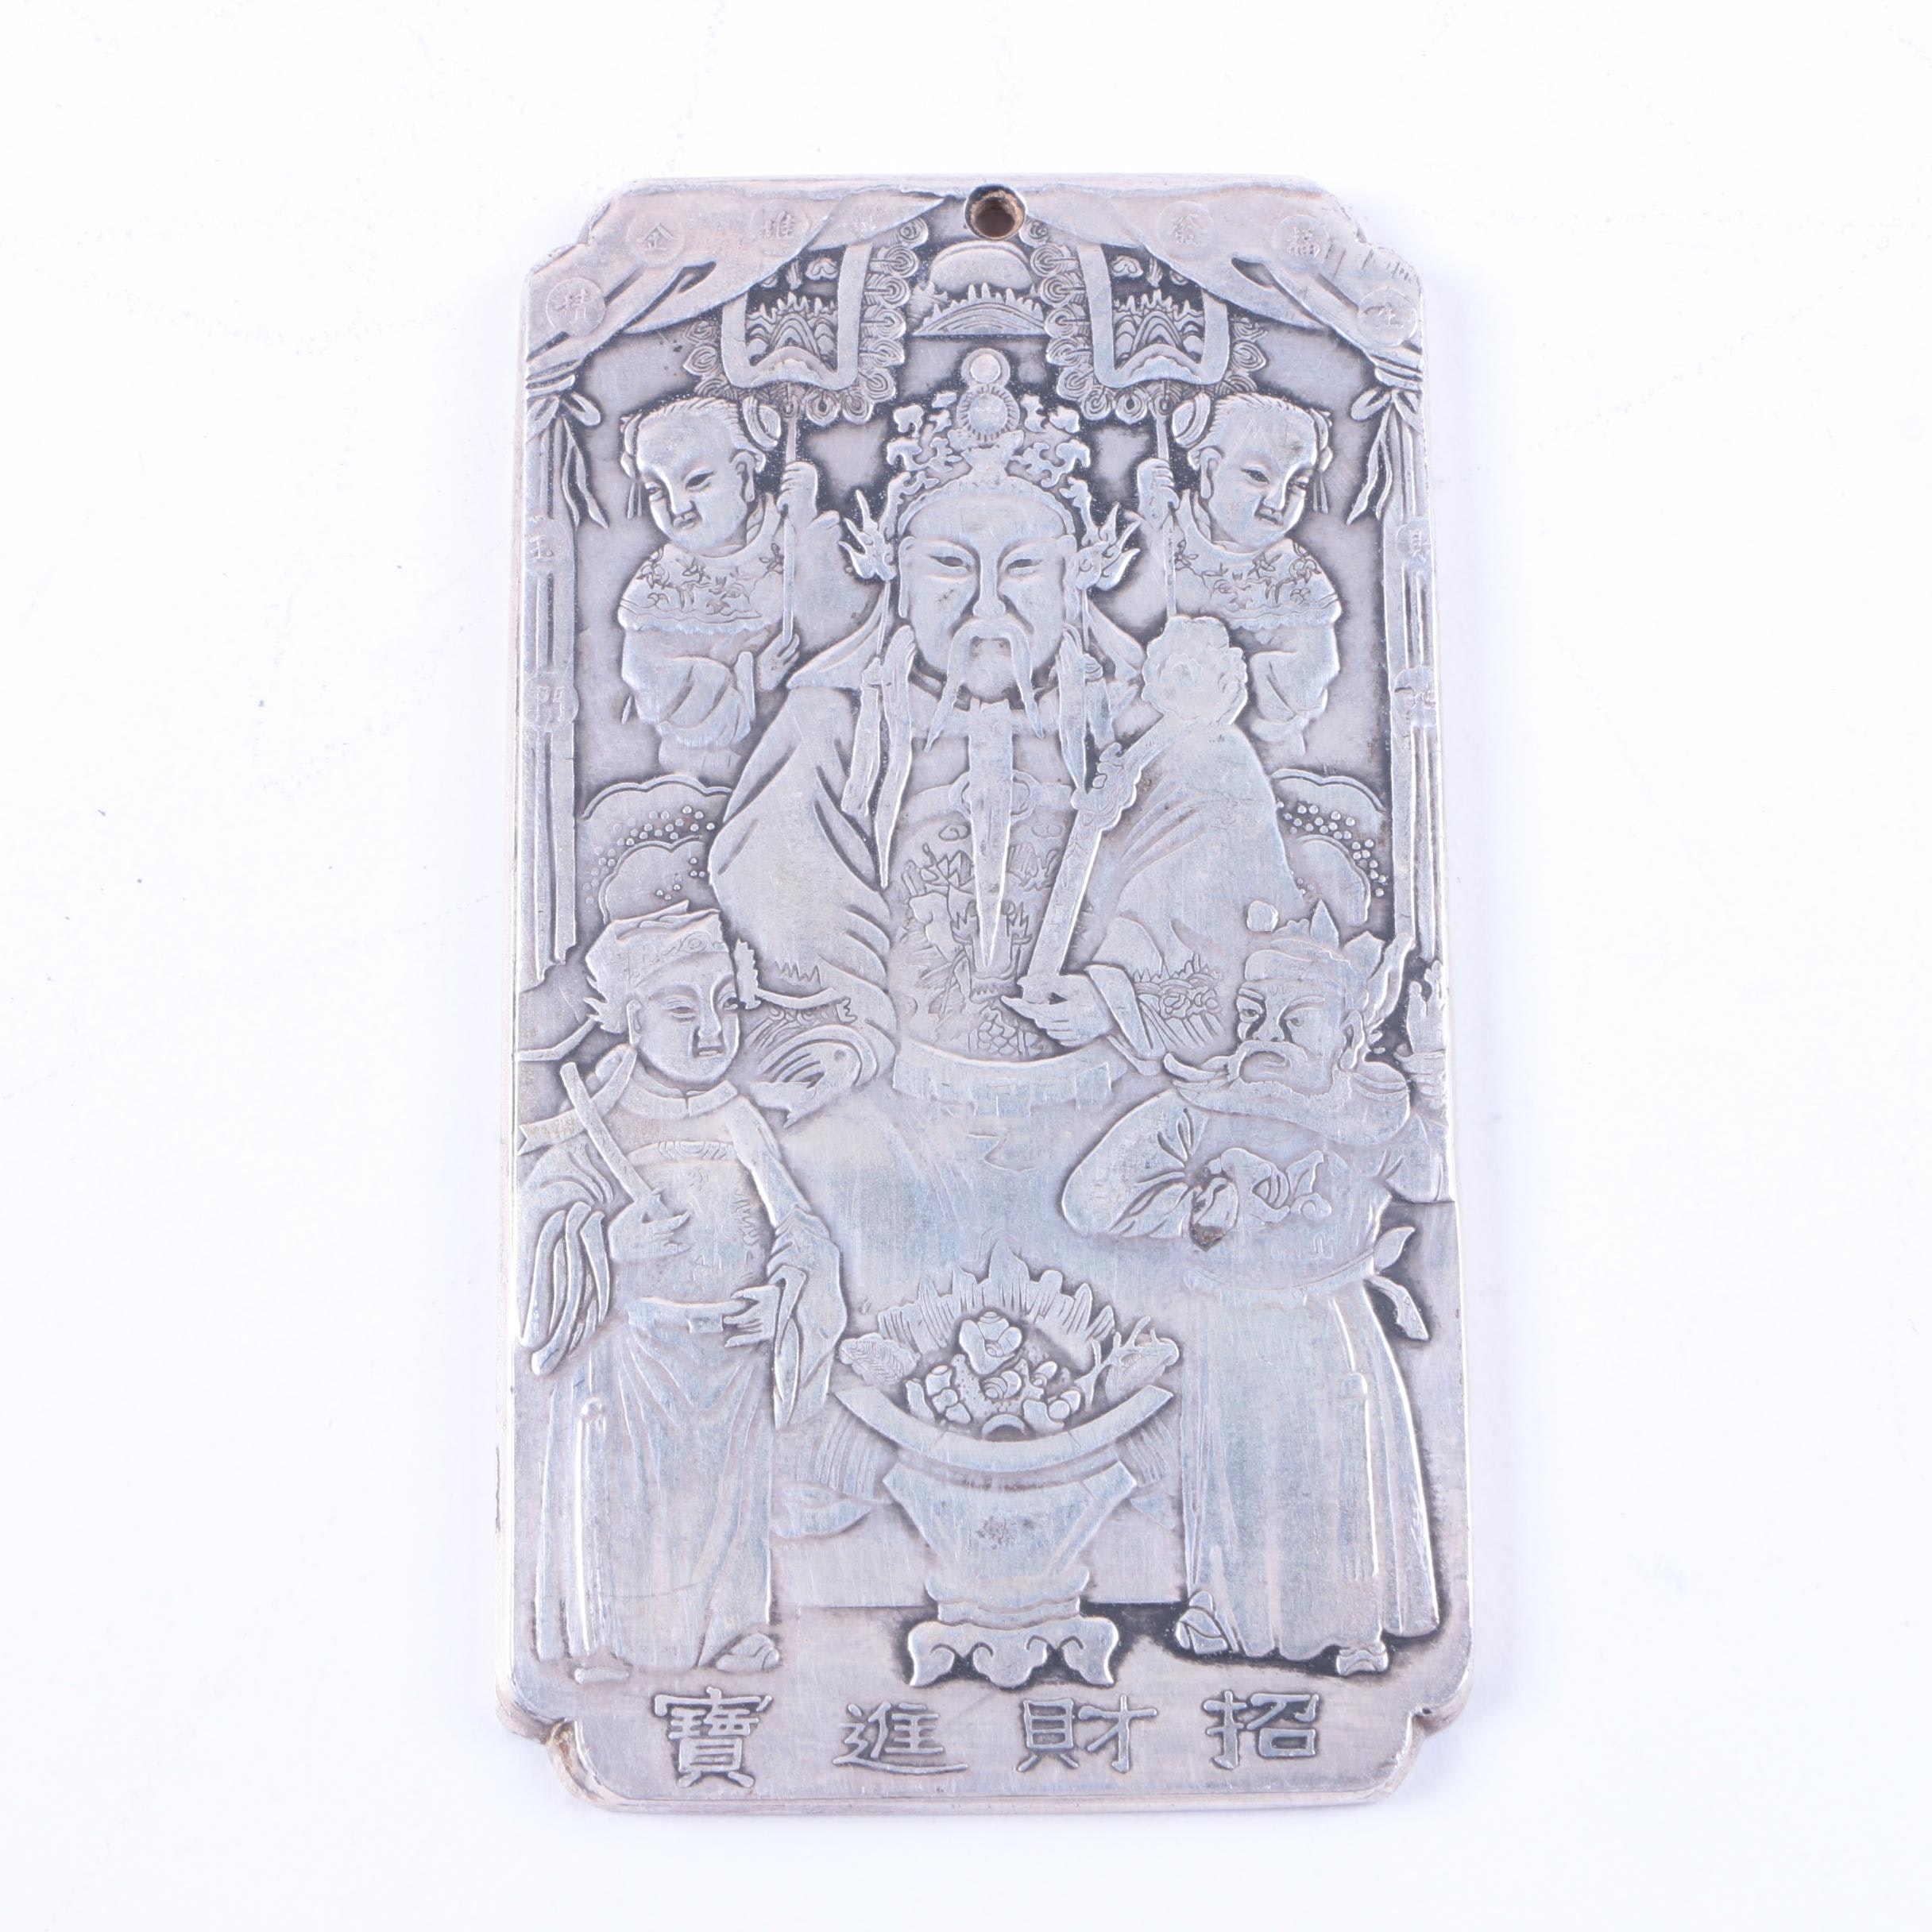 Vintage Chinese Silver Tone Figural Relief Scroll Weight